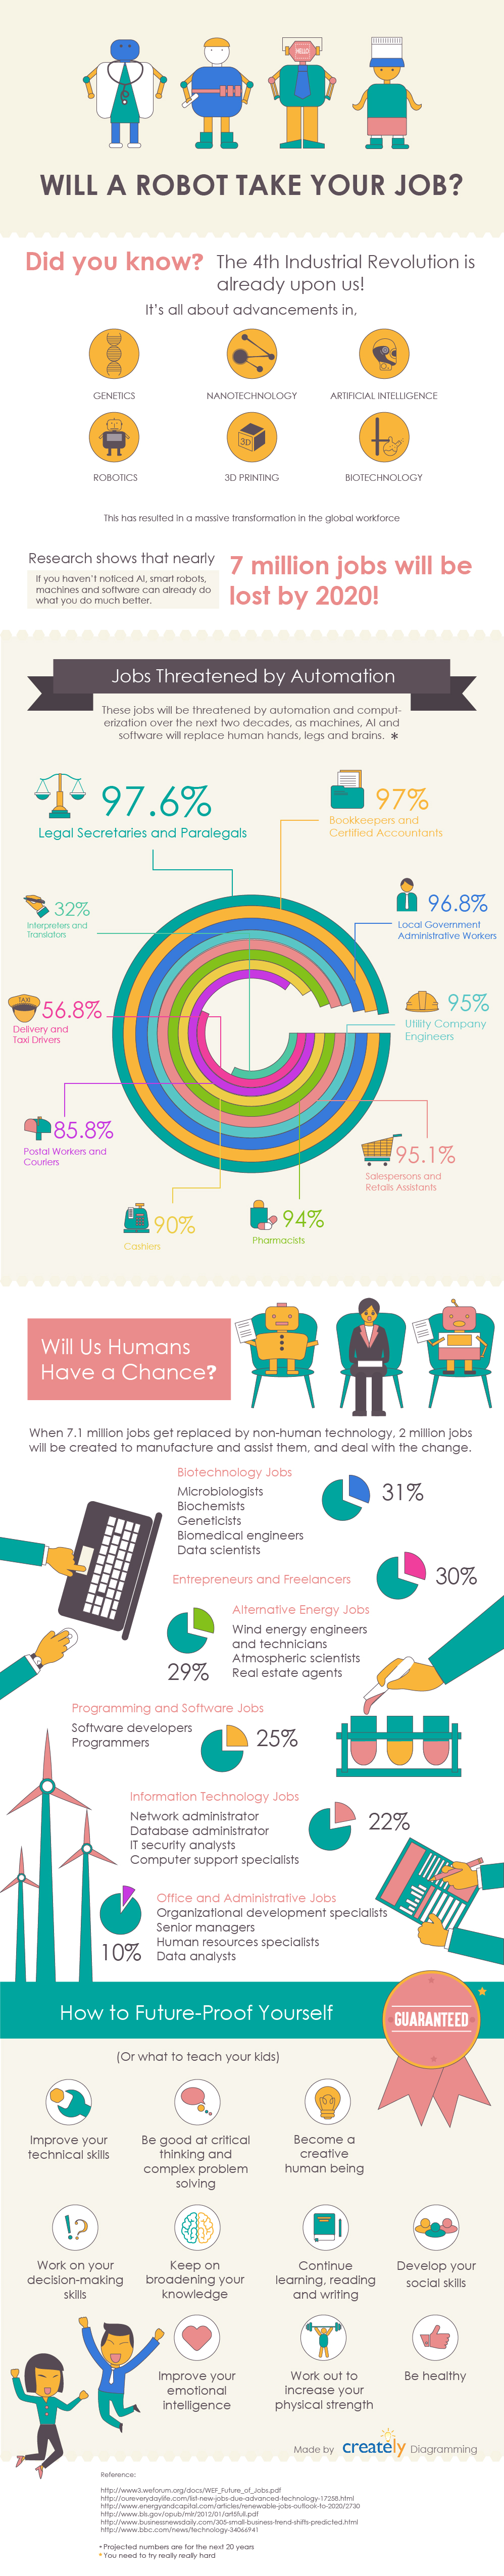 will-a-robot-take-my-job-infographic